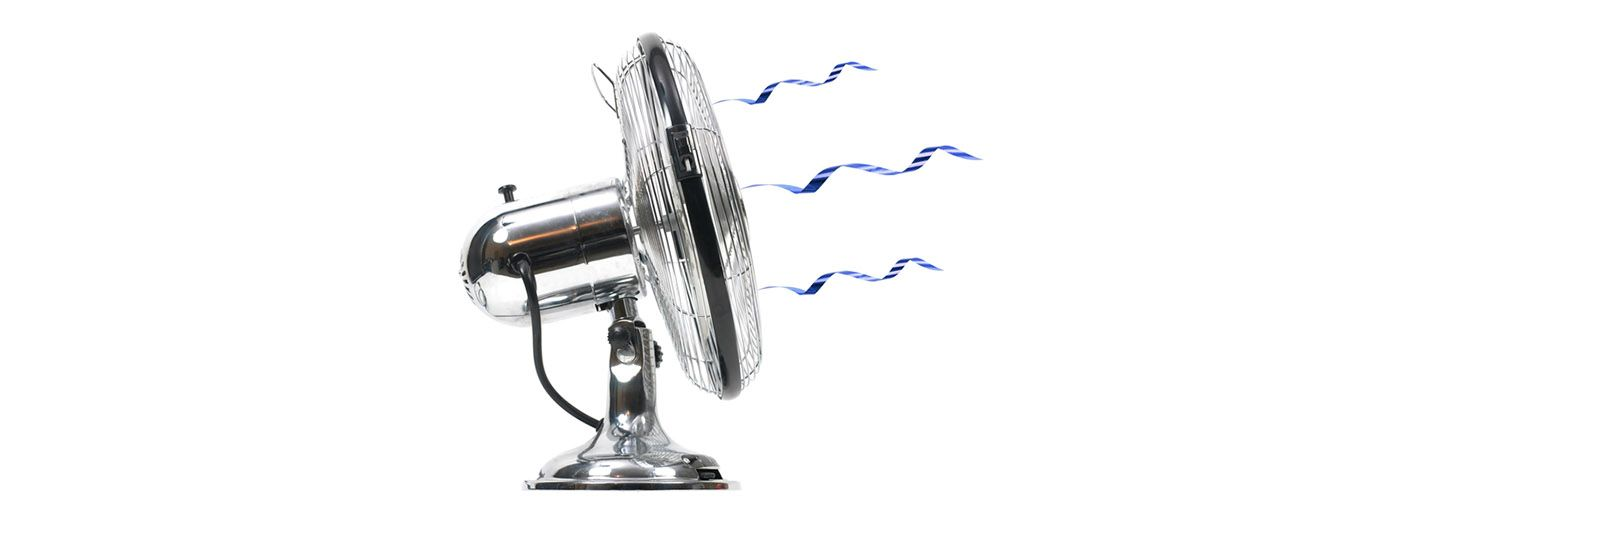 How to save energy in warm weather